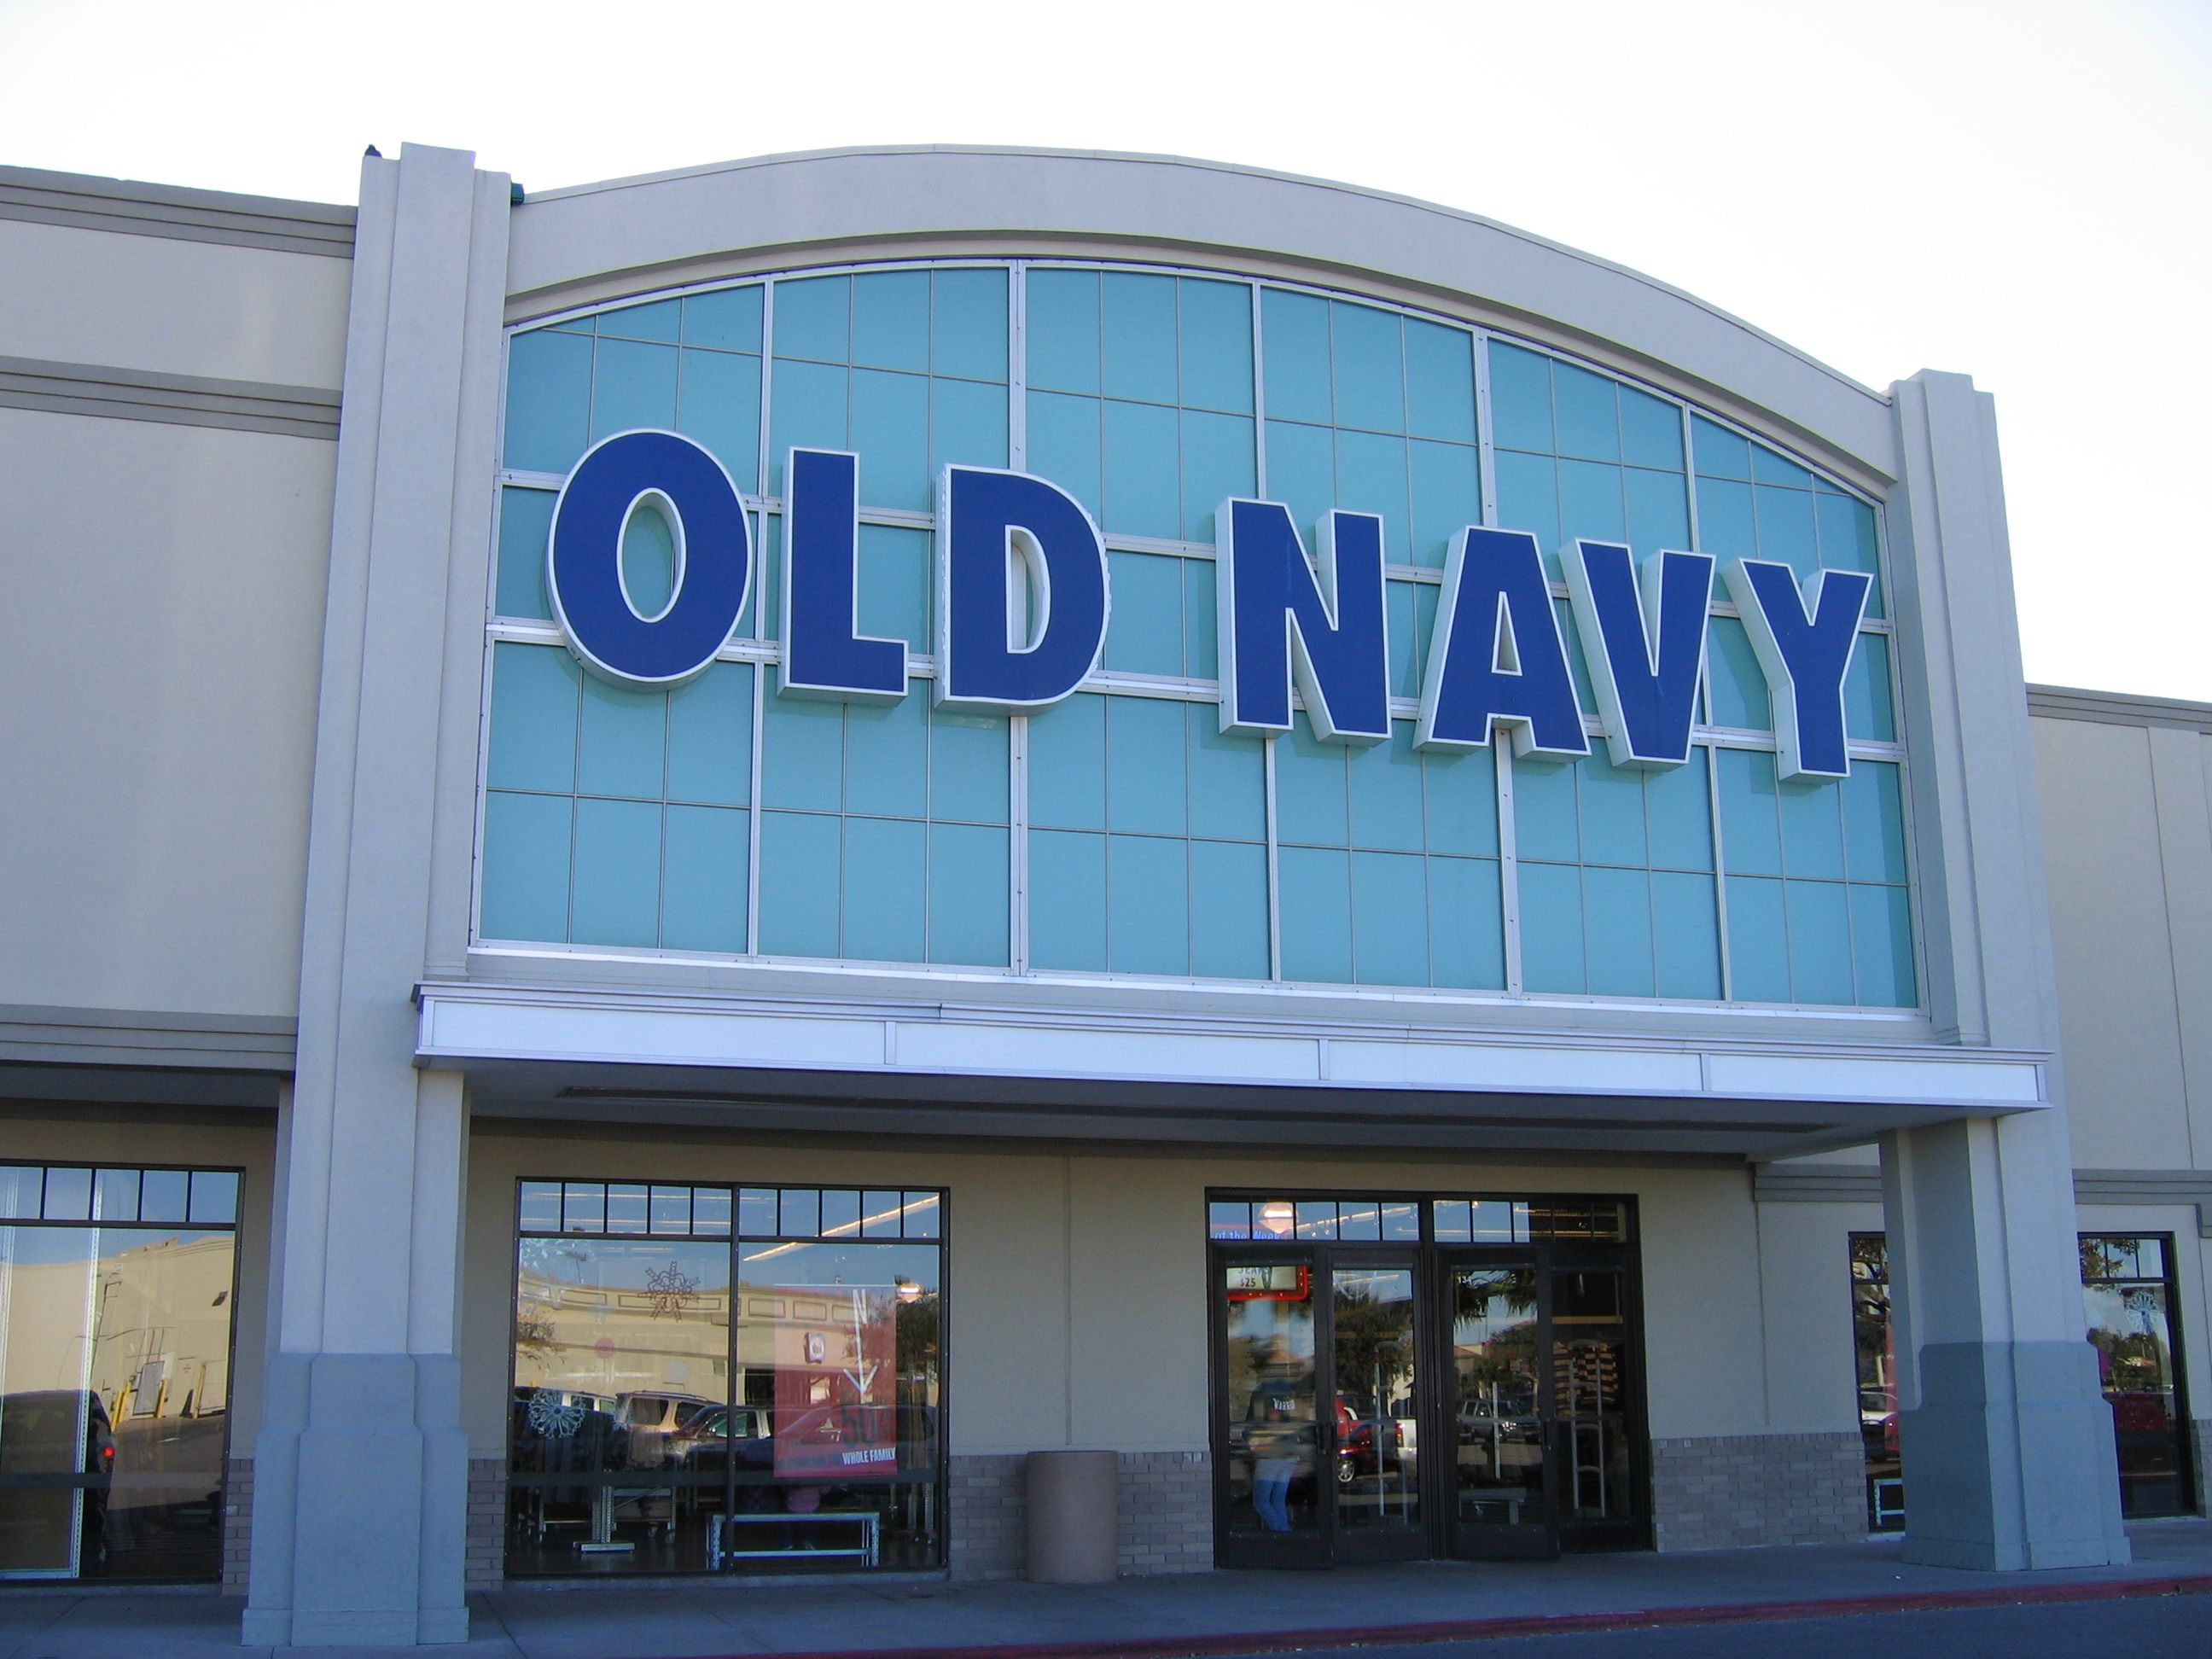 navy funnies - Google Search | Old navy coupon, Navy store ...